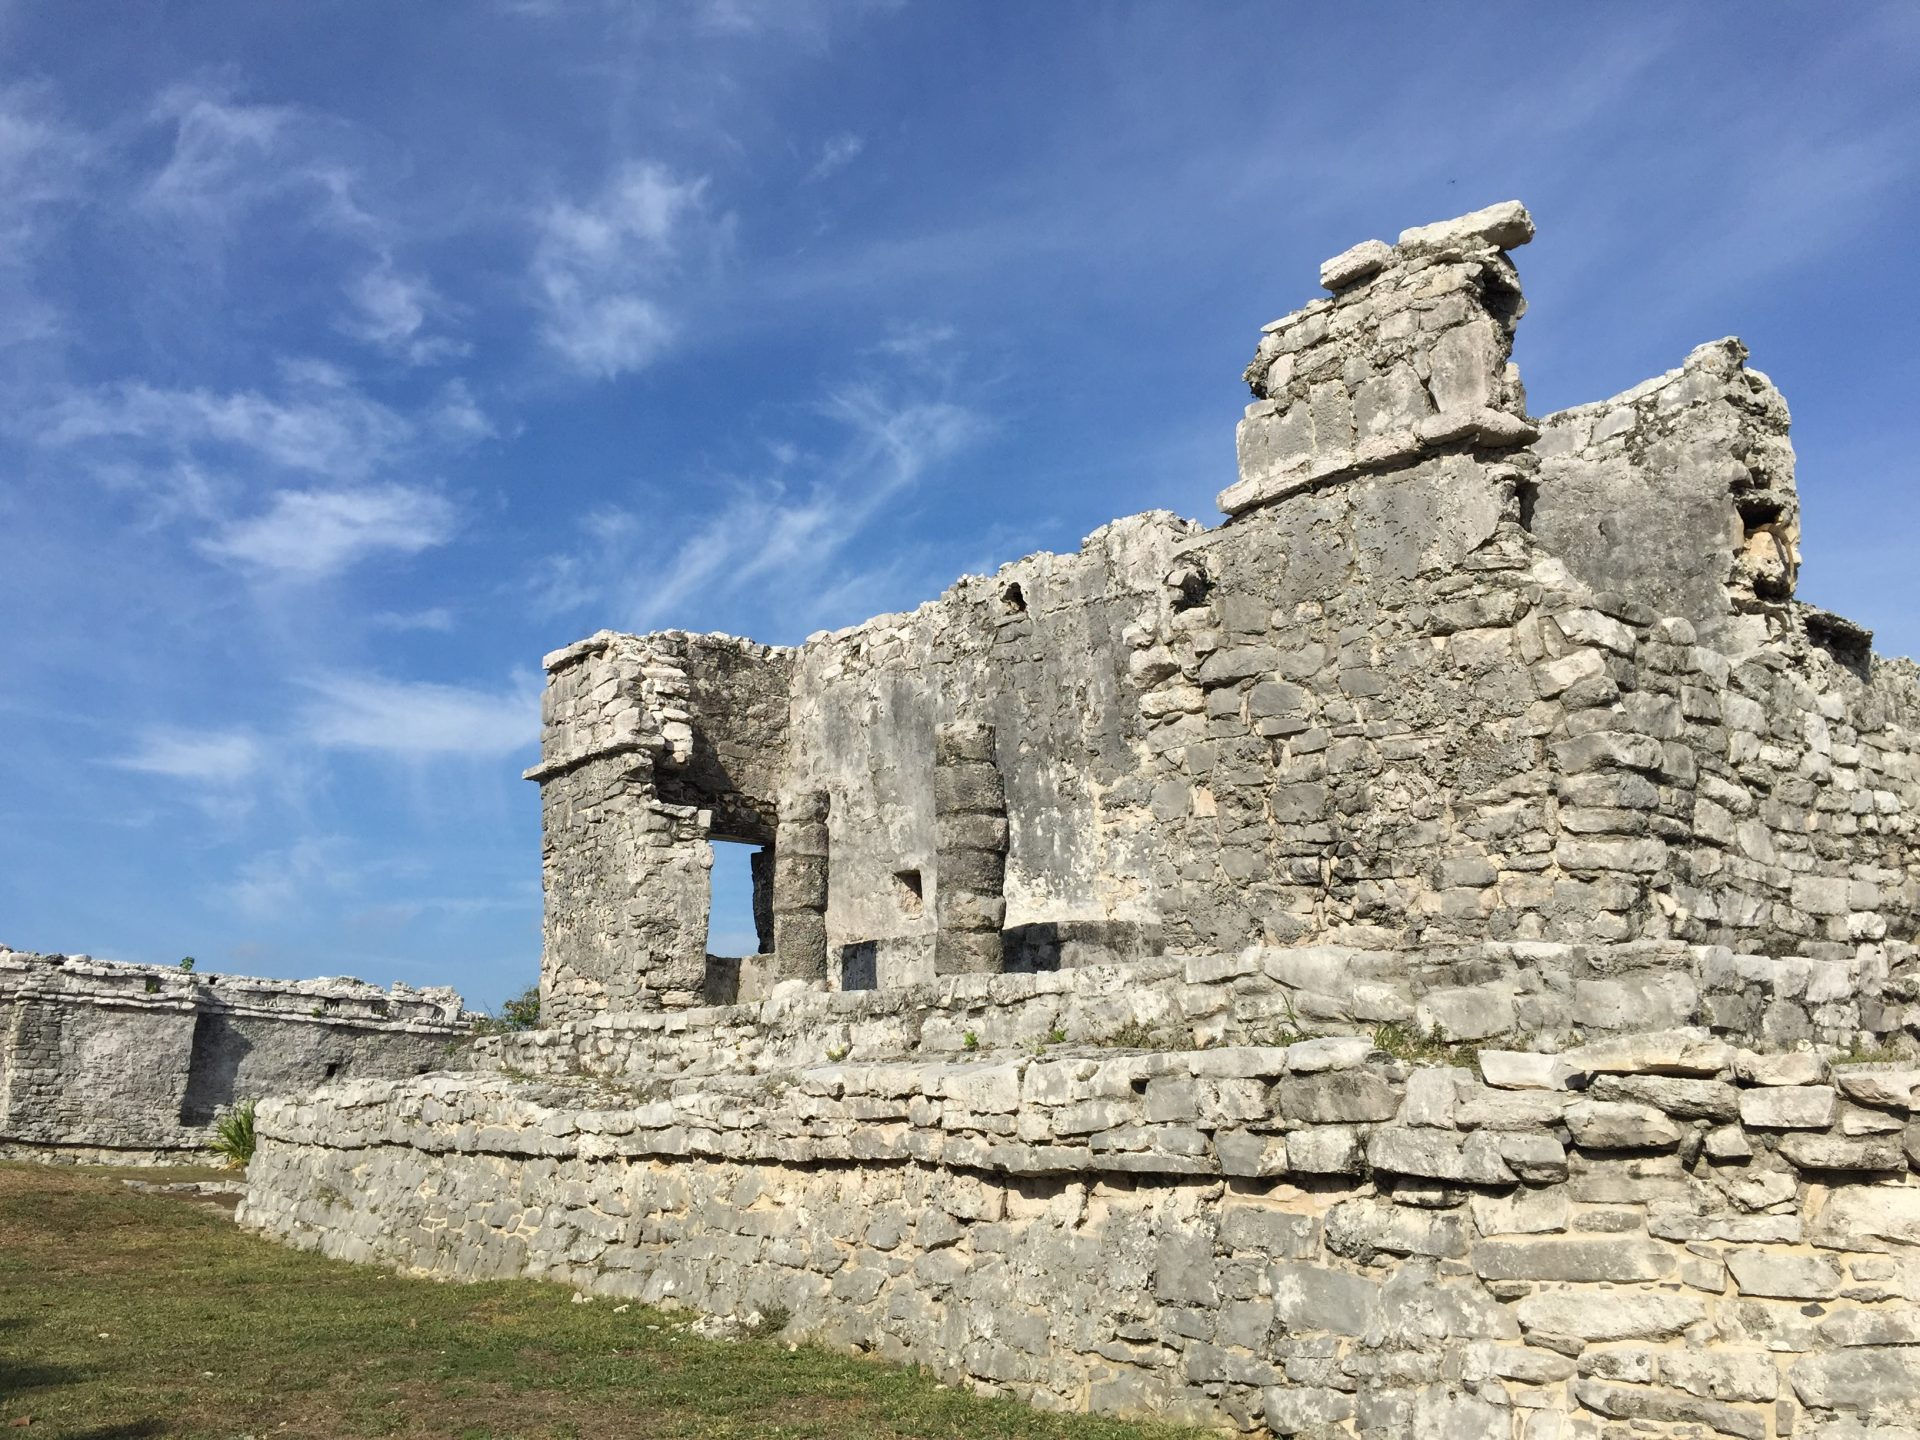 ruins tulum mexico - Travel Contests: December 2nd, 2020 - Mexico, England, Costa Rica, & more